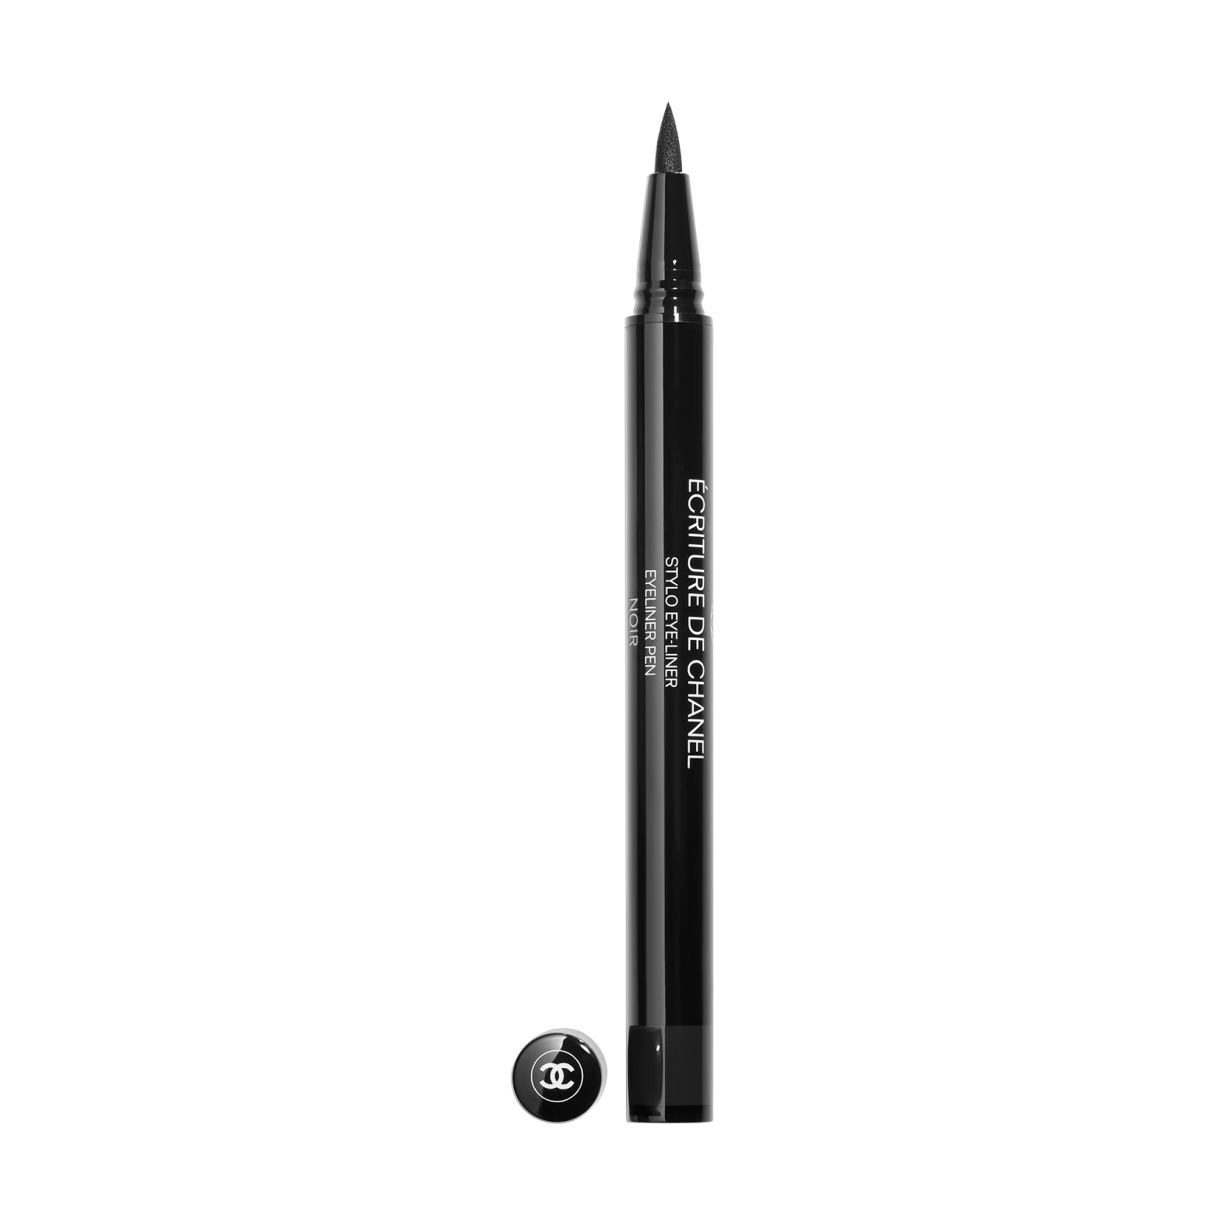 ÉCRITURE DE CHANEL EYELINER PEN EFFORTLESS DEFINITION 10 - NOIR